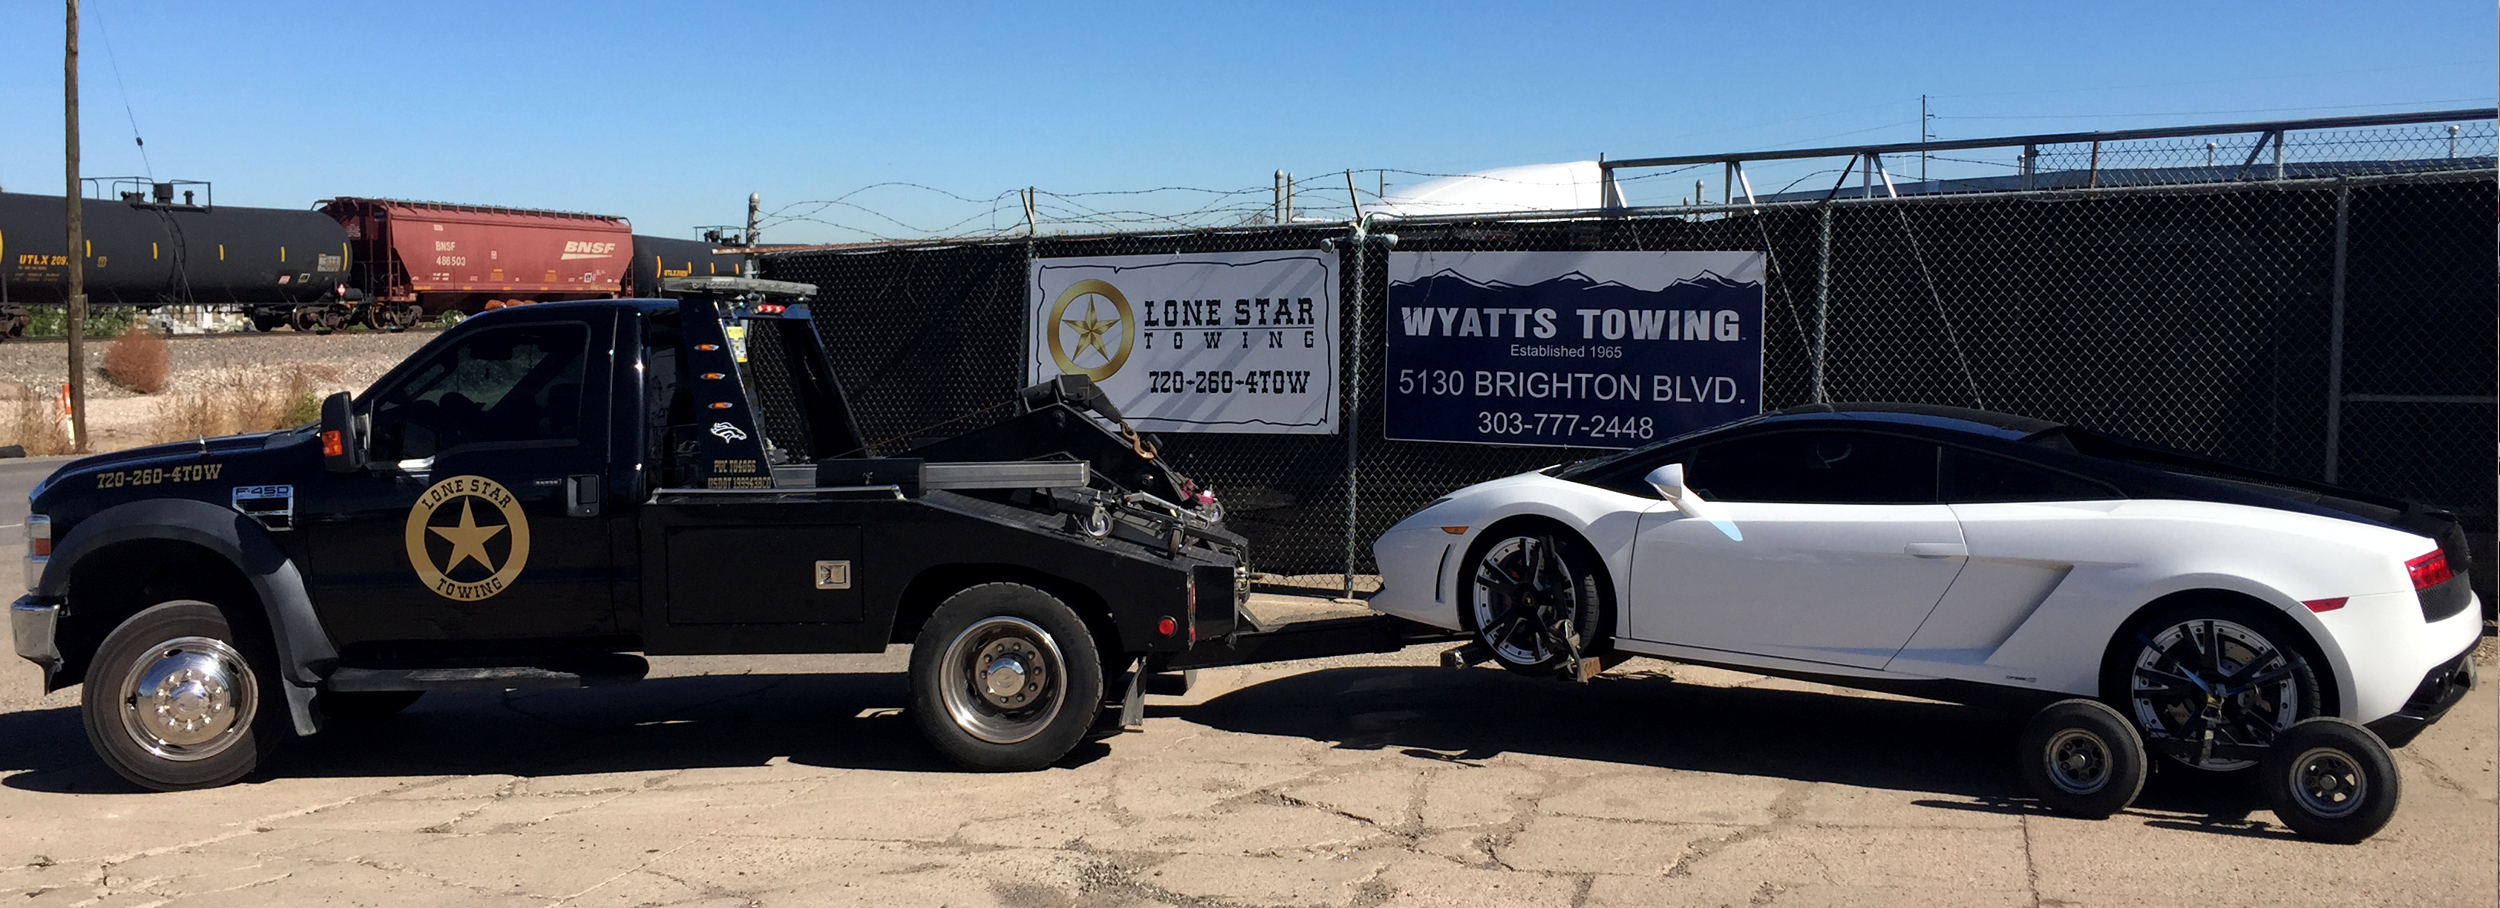 Lone Star Towing